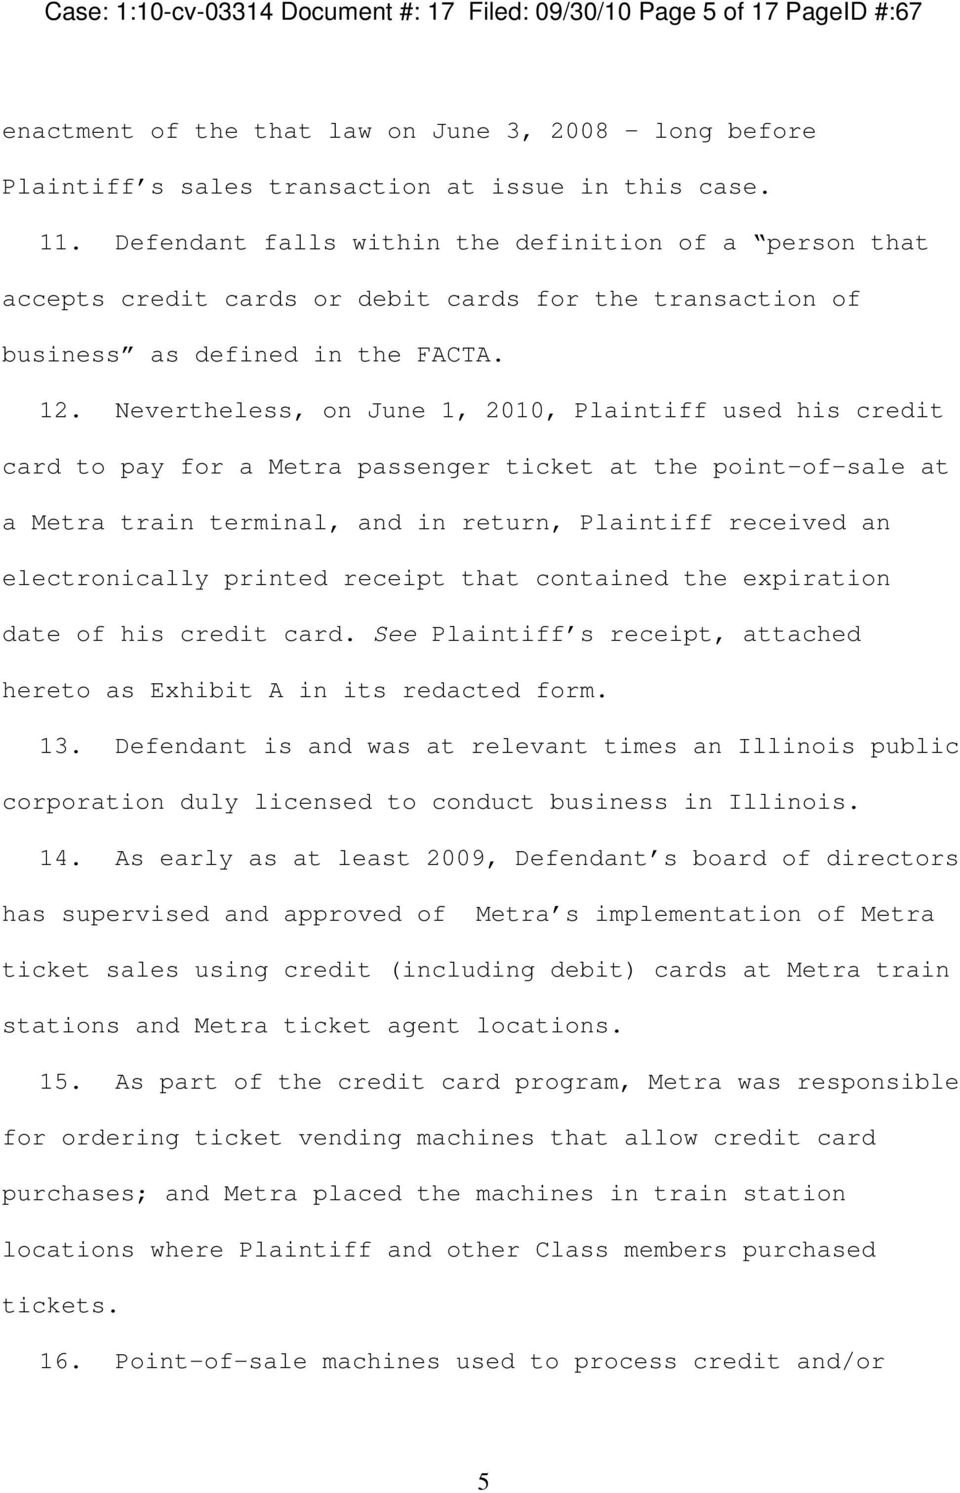 Nevertheless, on June 1, 2010, Plaintiff used his credit card to pay for a Metra passenger ticket at the point-of-sale at a Metra train terminal, and in return, Plaintiff received an electronically